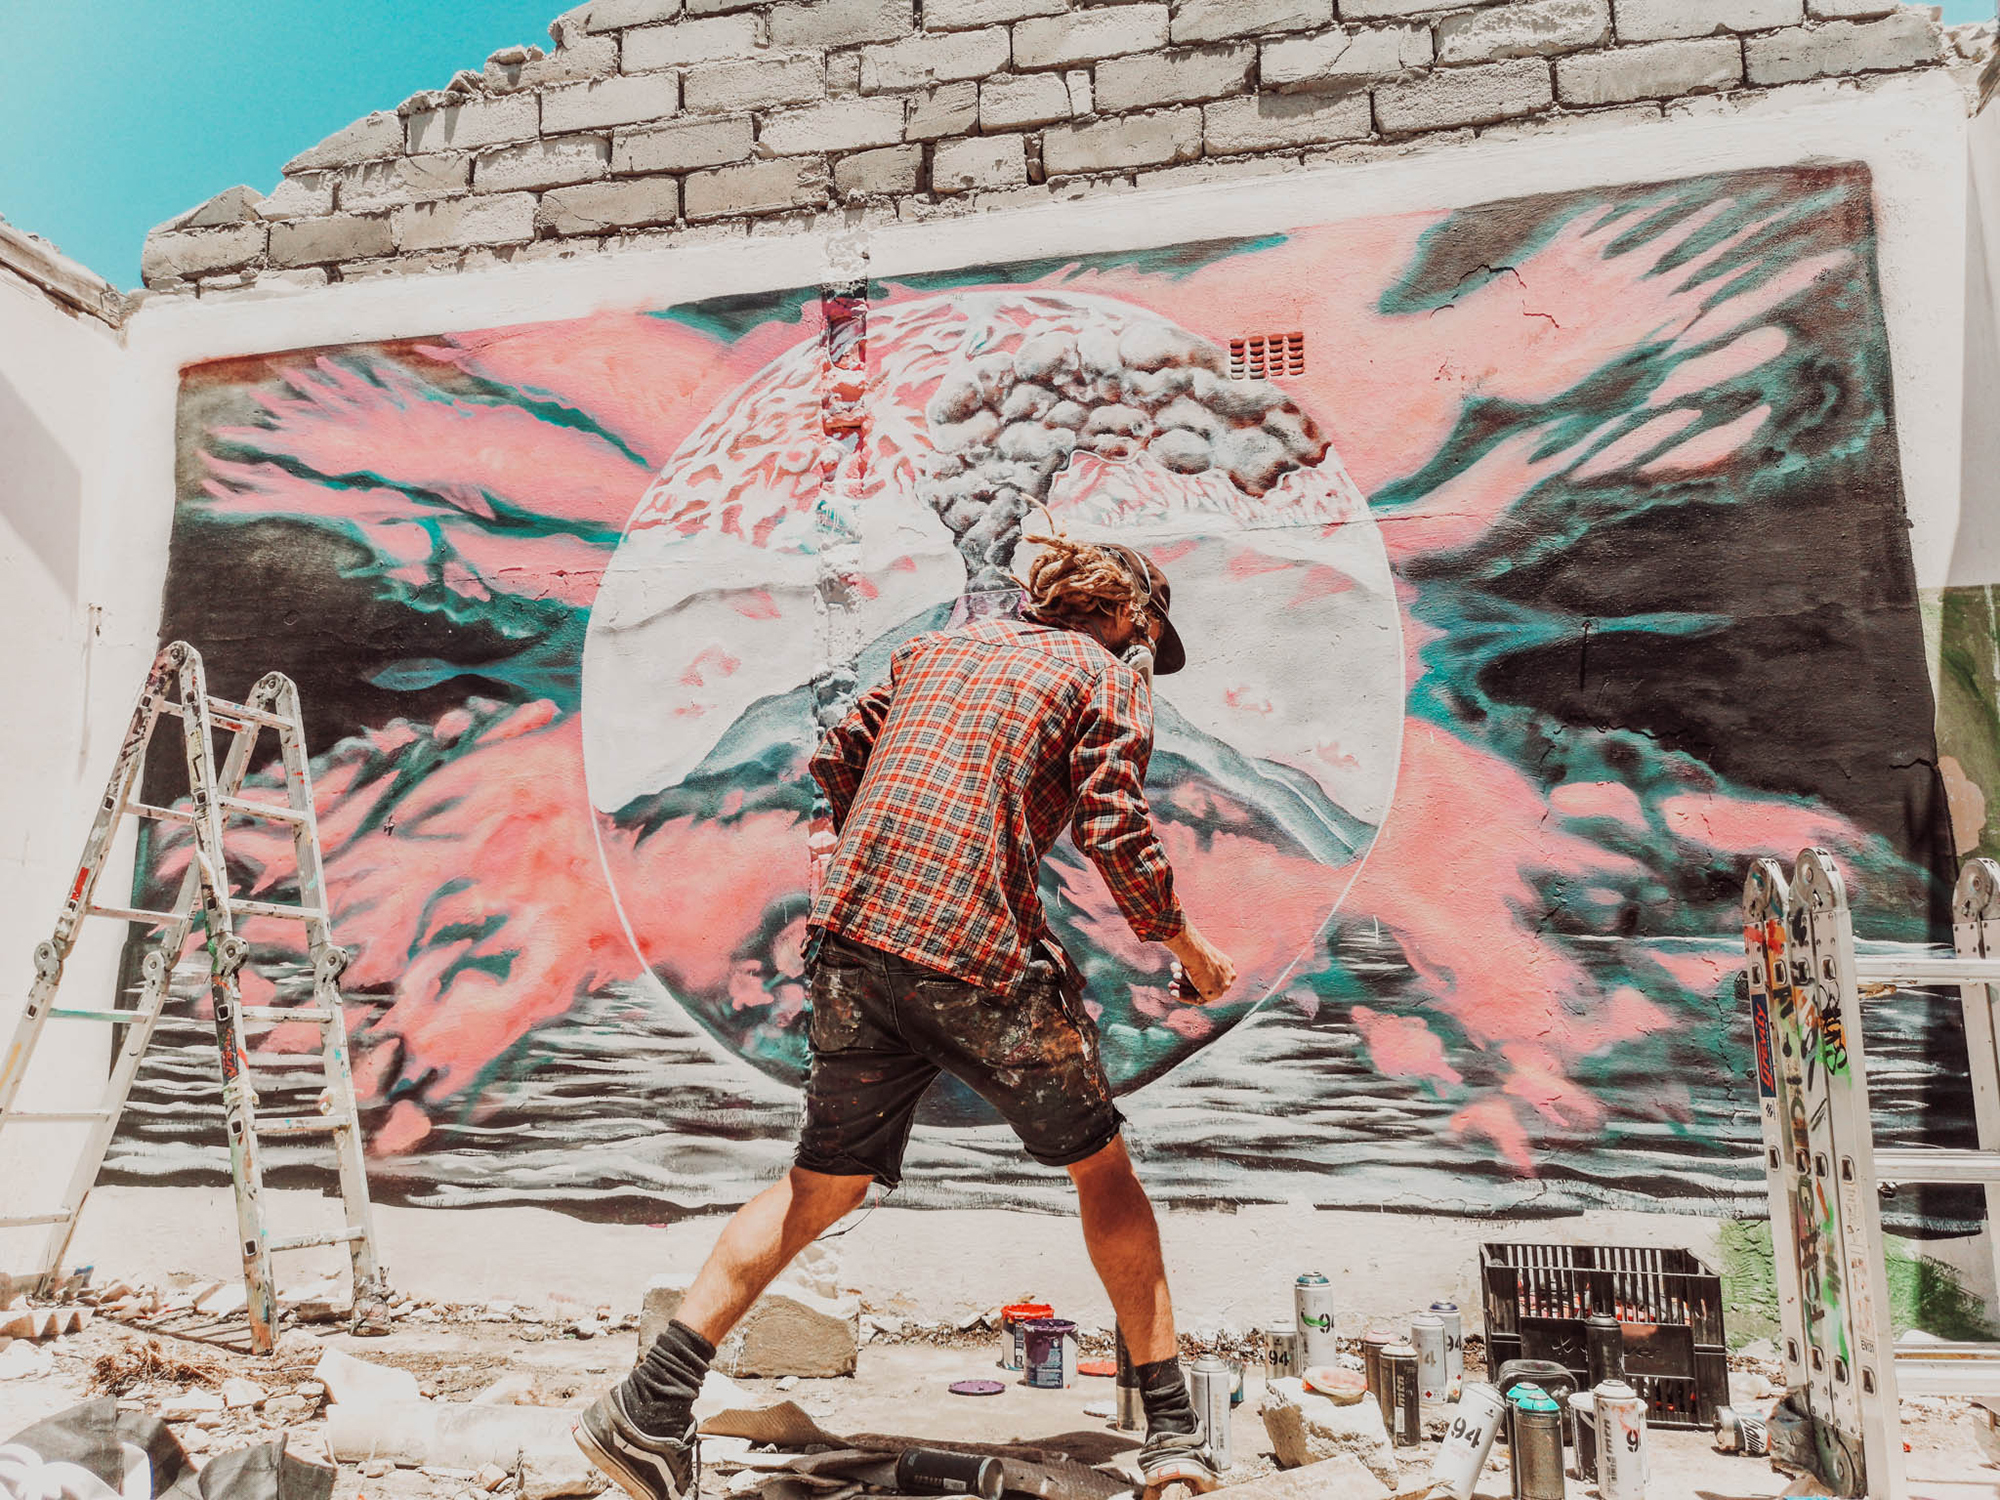 Marti Lund Spray Painting a Wall